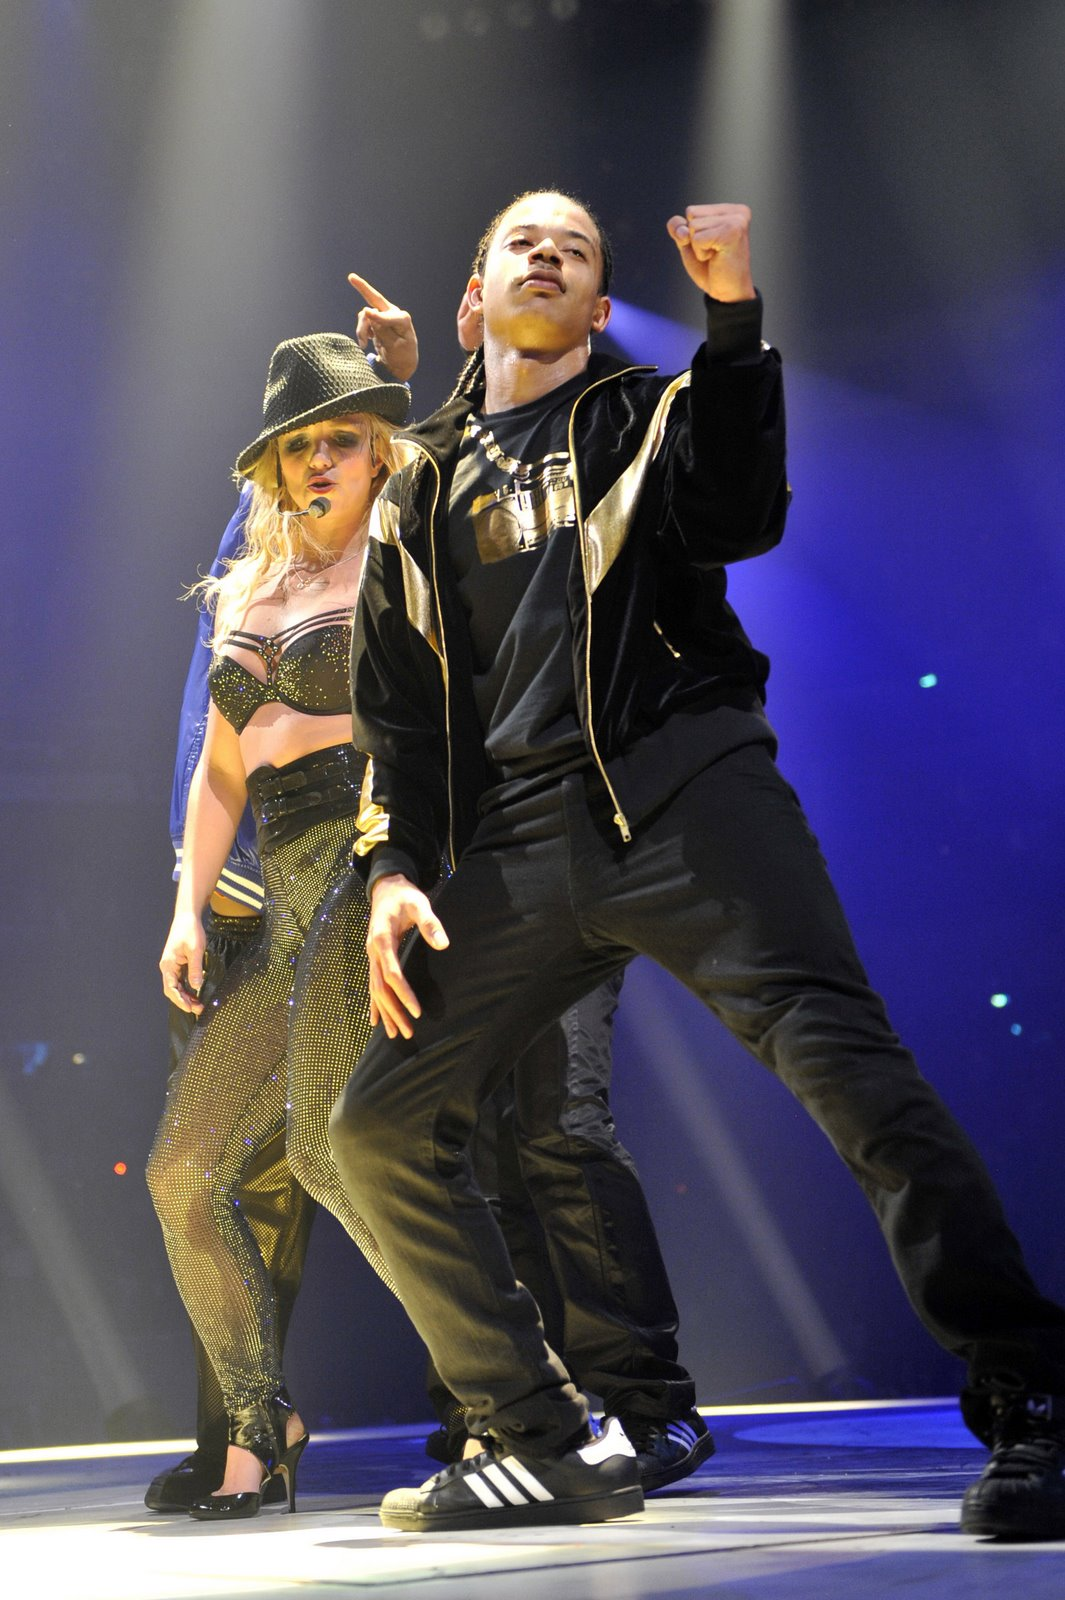 [85427_babayaga_Britney_Spears_The_Circus_Starring_Britney_Spears_Performance_03-03-2009_099_123_738lo.jpg]